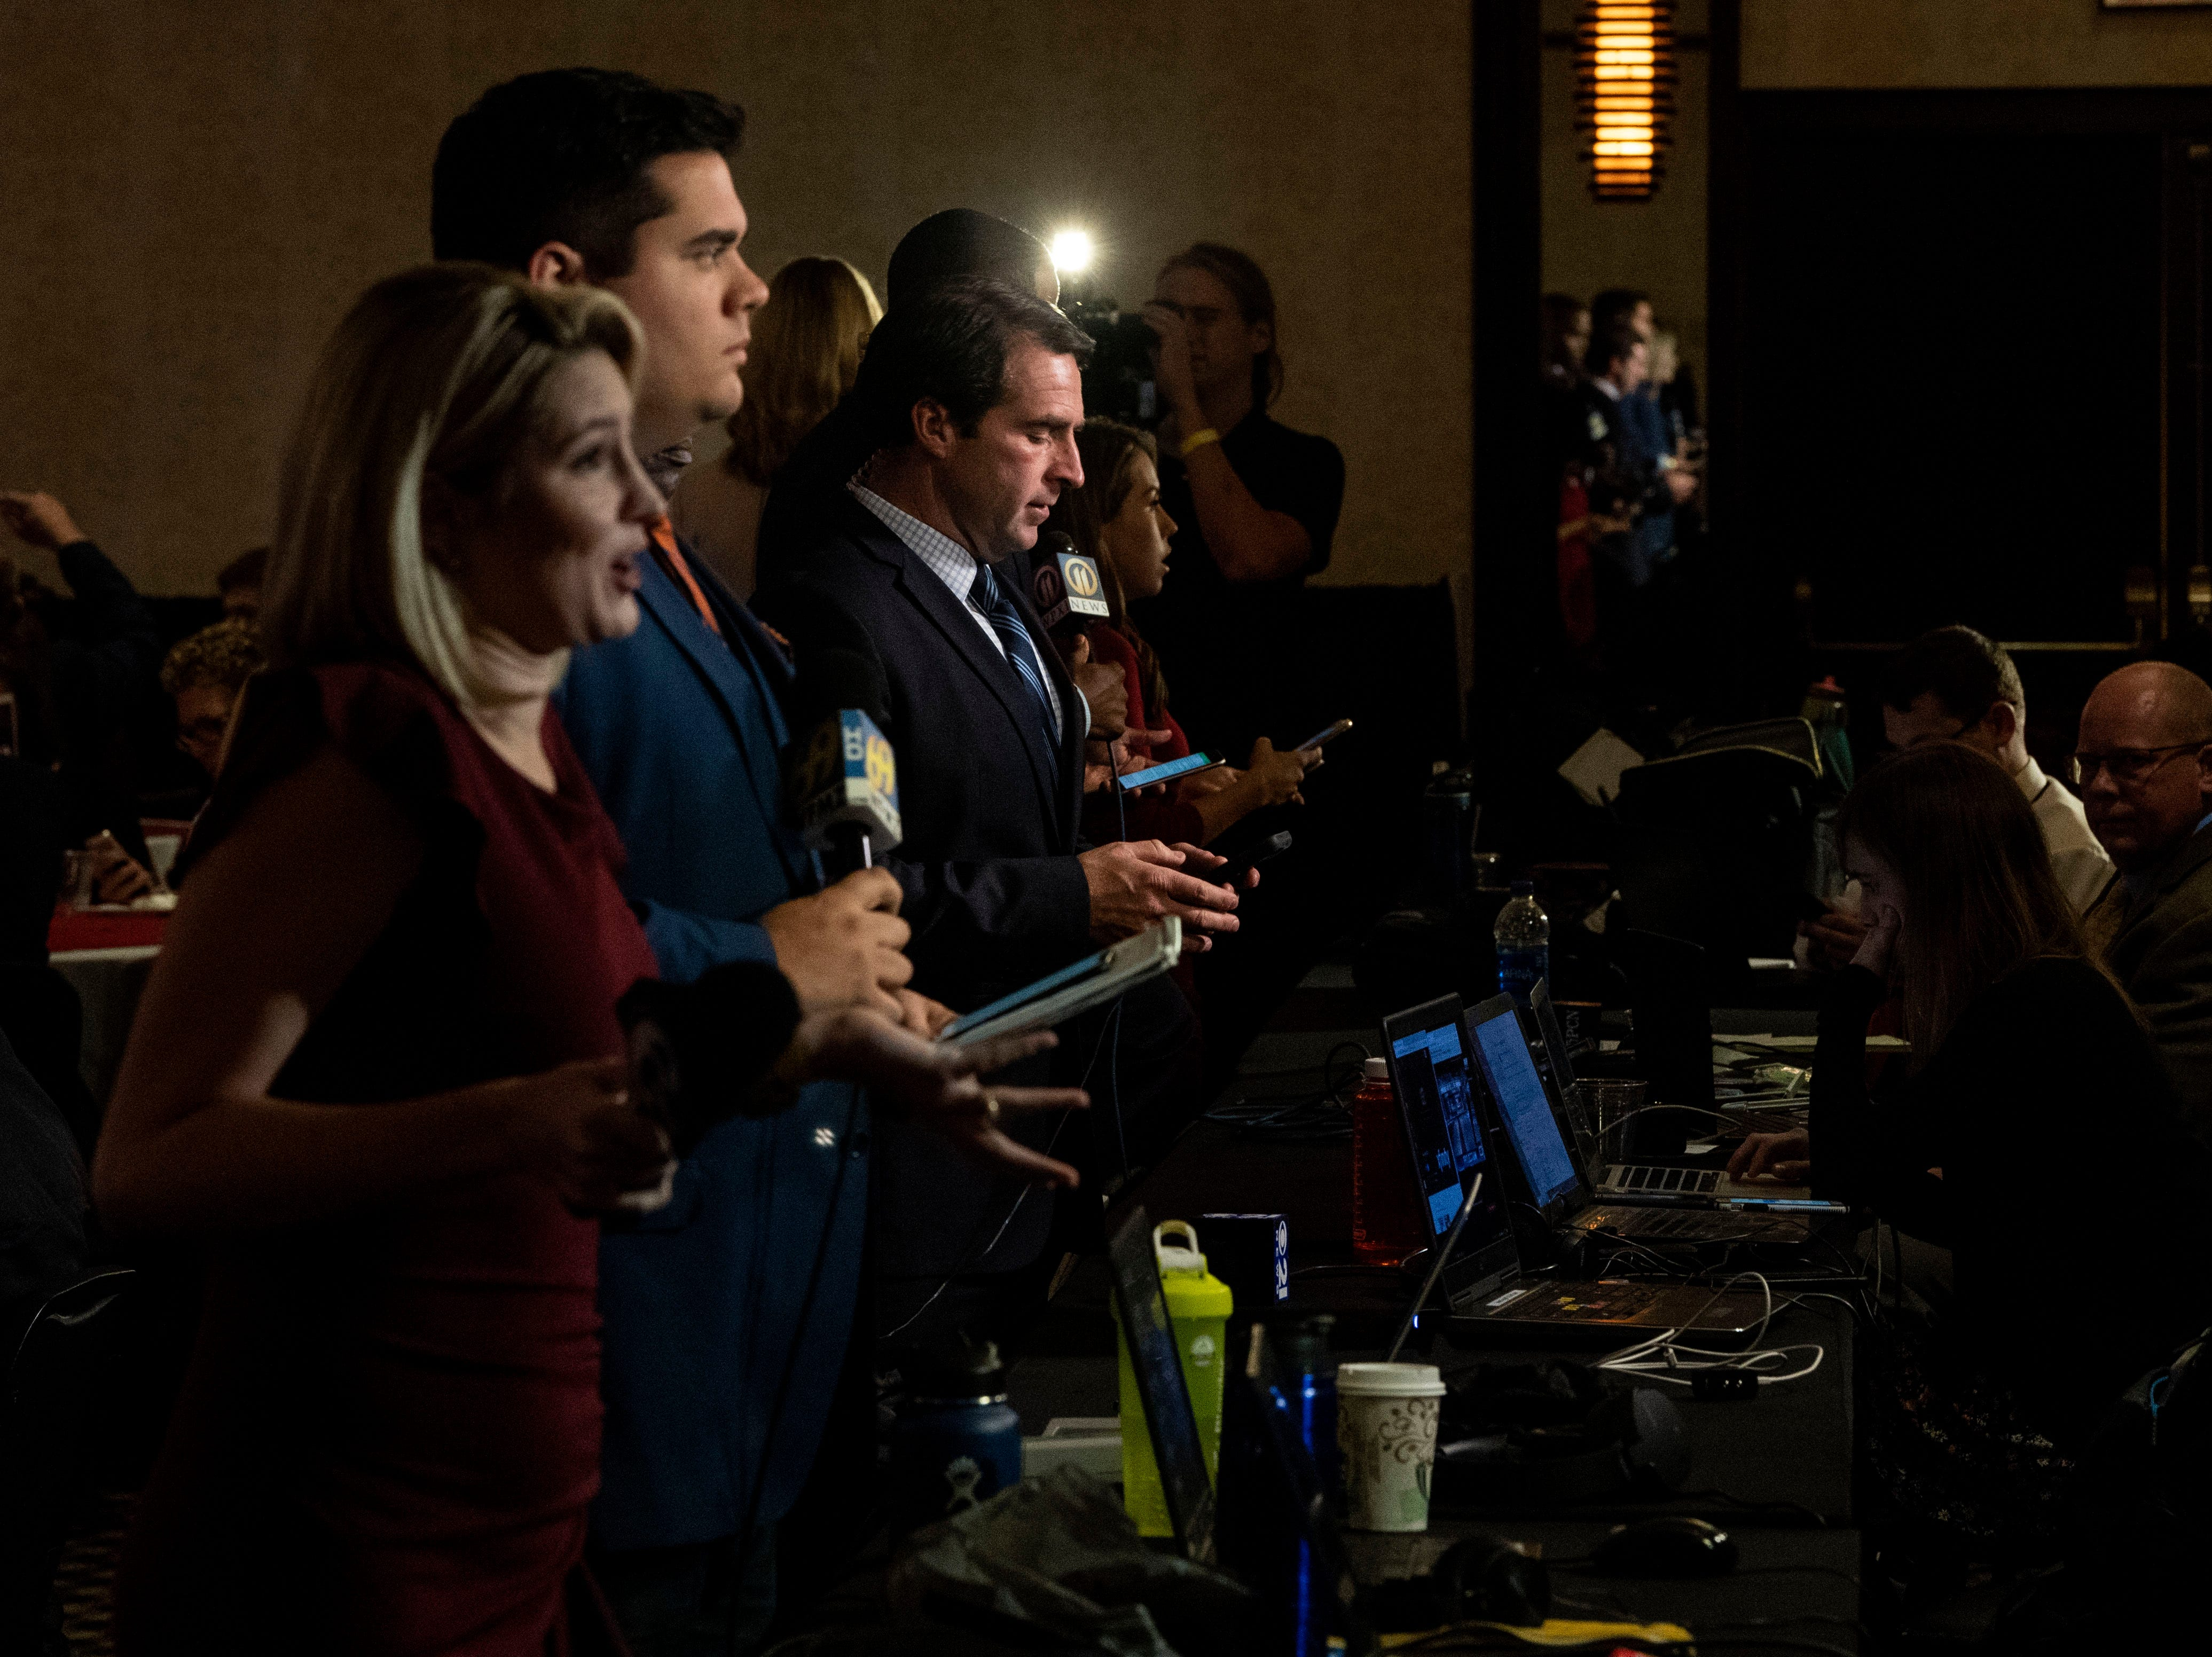 TV news gets ready to go live at Republican Scott Wagner's election watch party at the Wyndham Garden York hotel on Tuesday, Nov. 6, 2018. Wagner lost to Democratic incumbent Tom Wolf. During his concession speech, Wagner said he's not going anywhere.